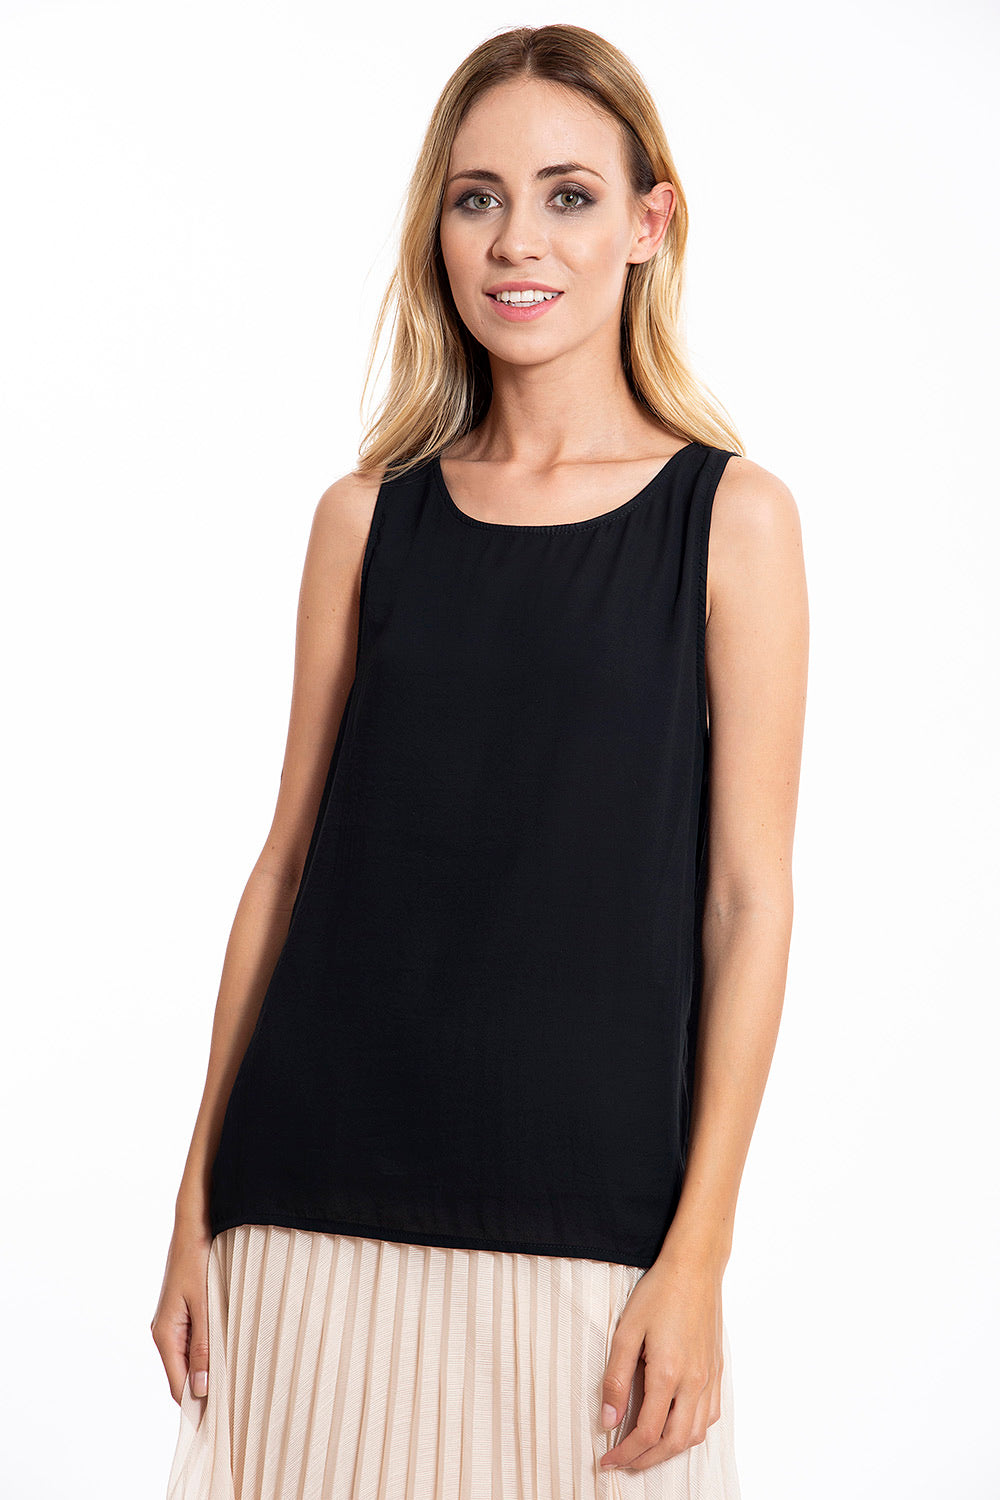 Black chiffon top from Prive